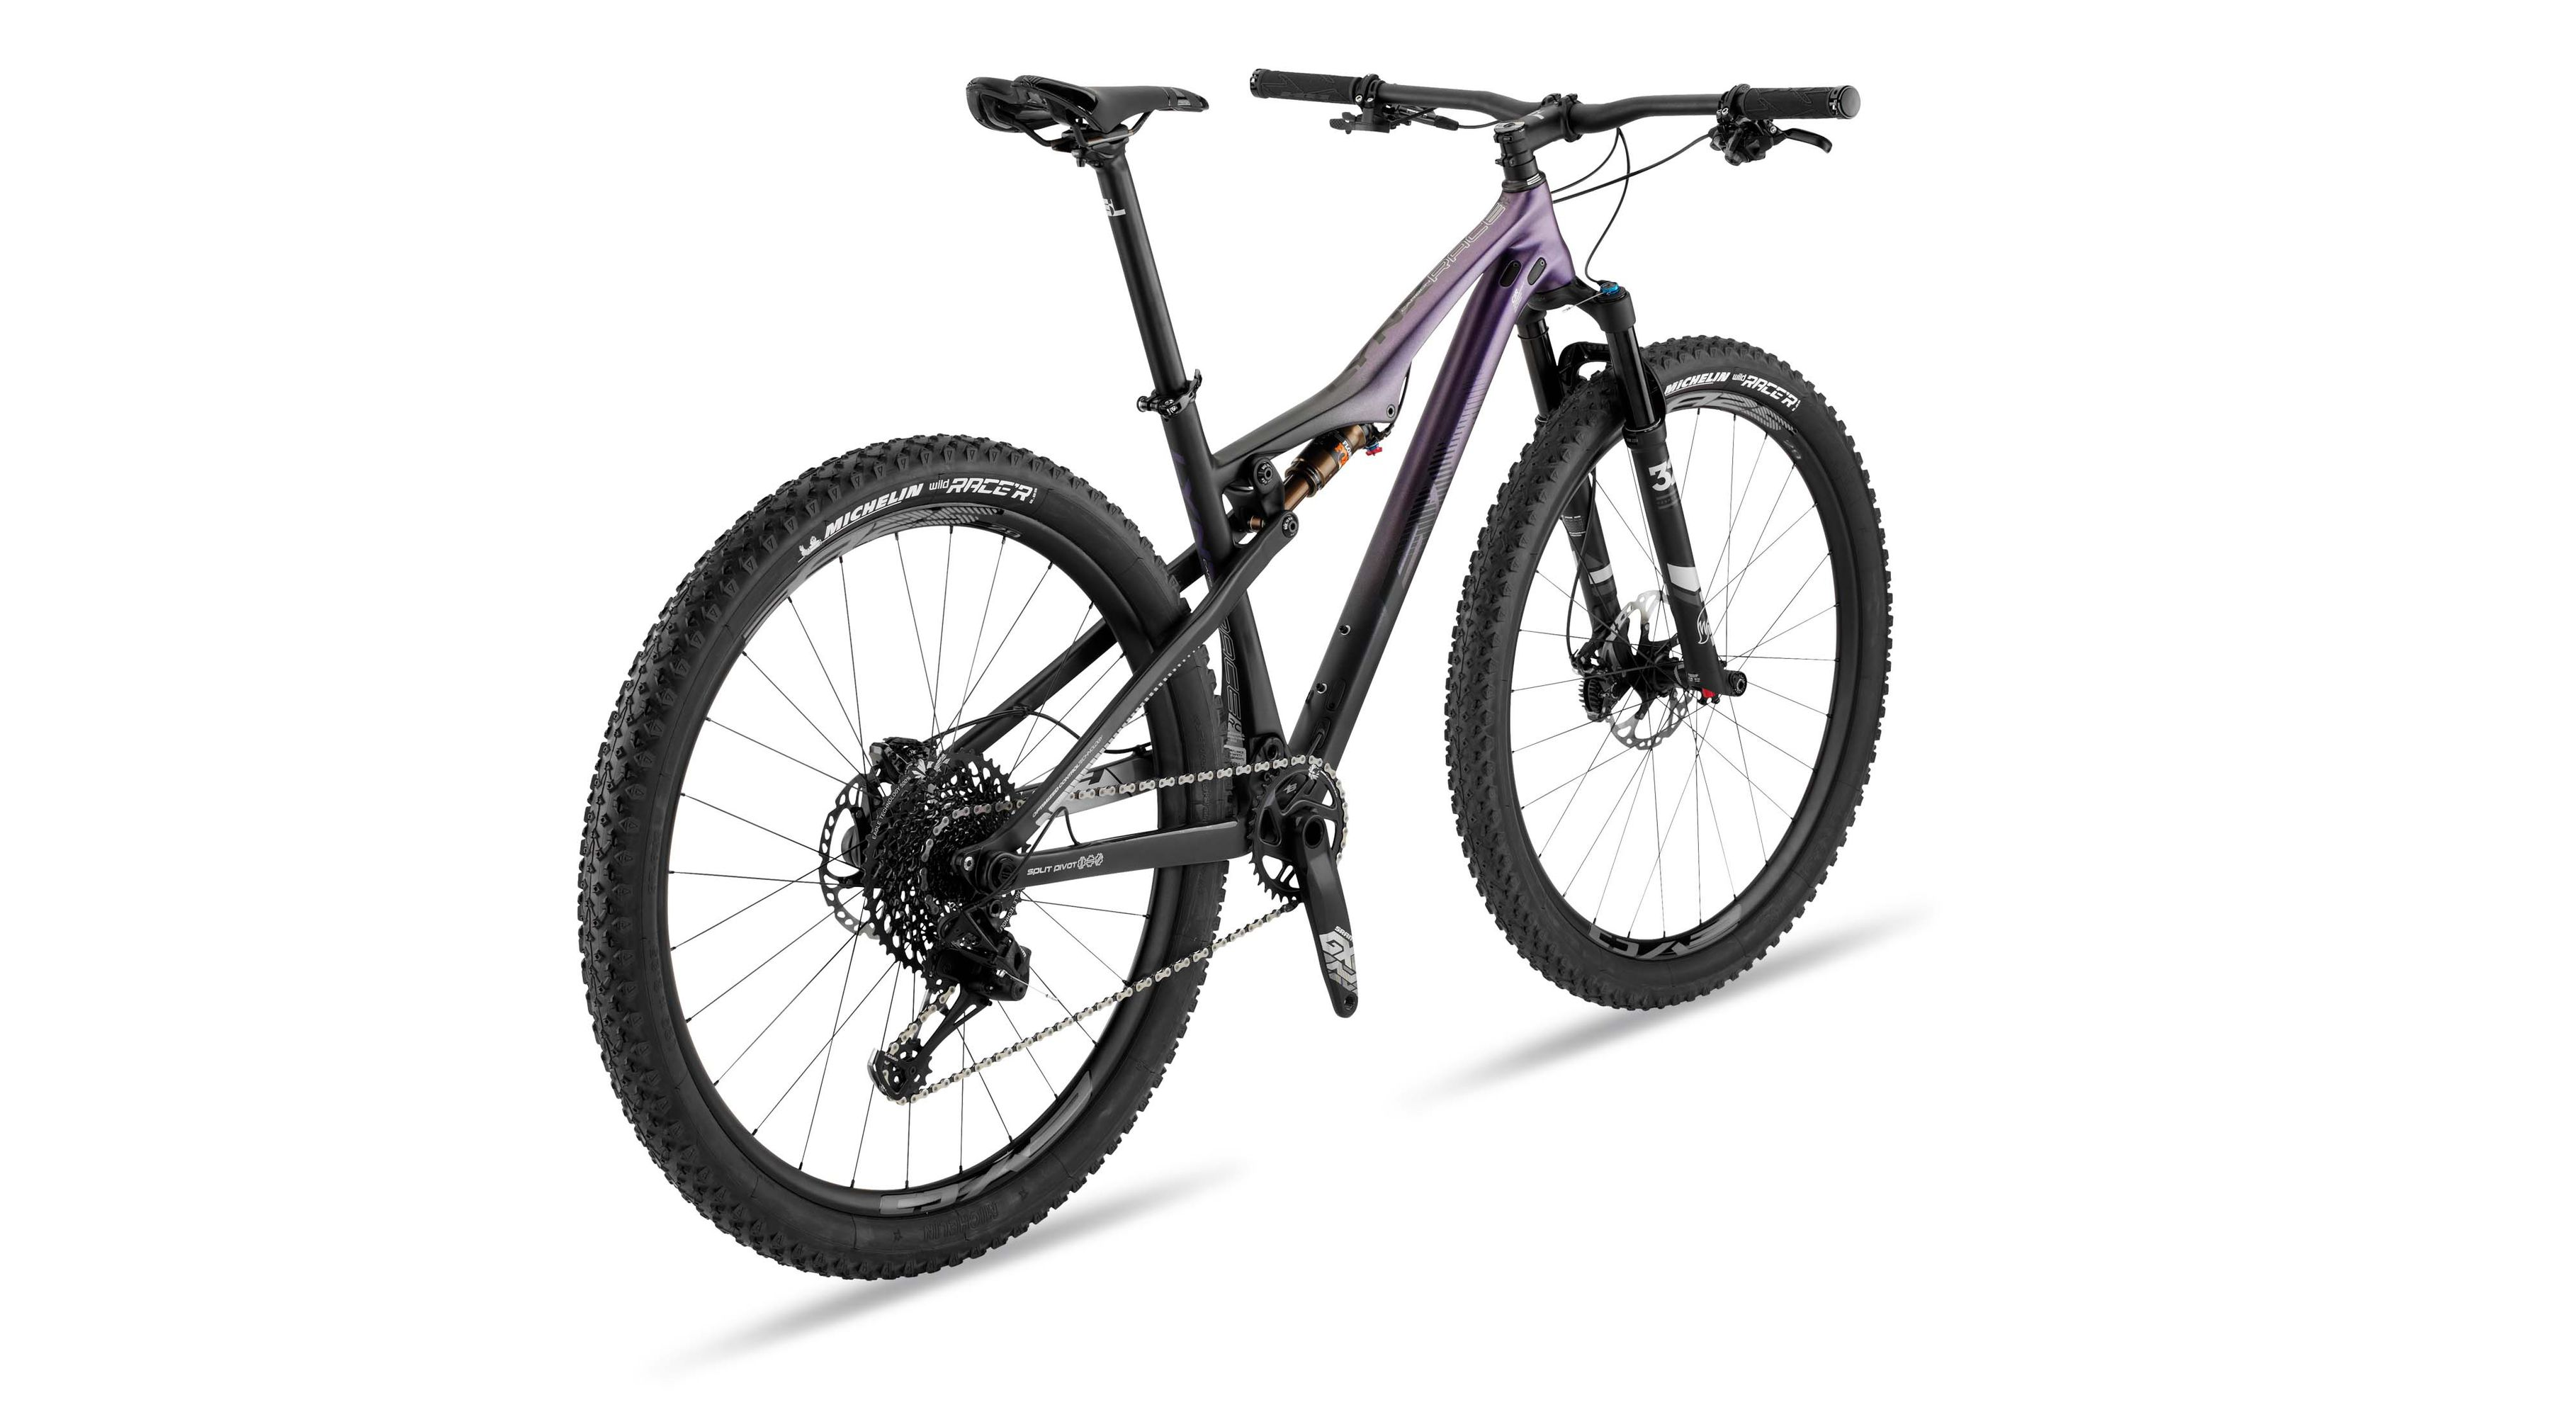 LYNX RACE CARBON RC 7.9 - BH Bikes